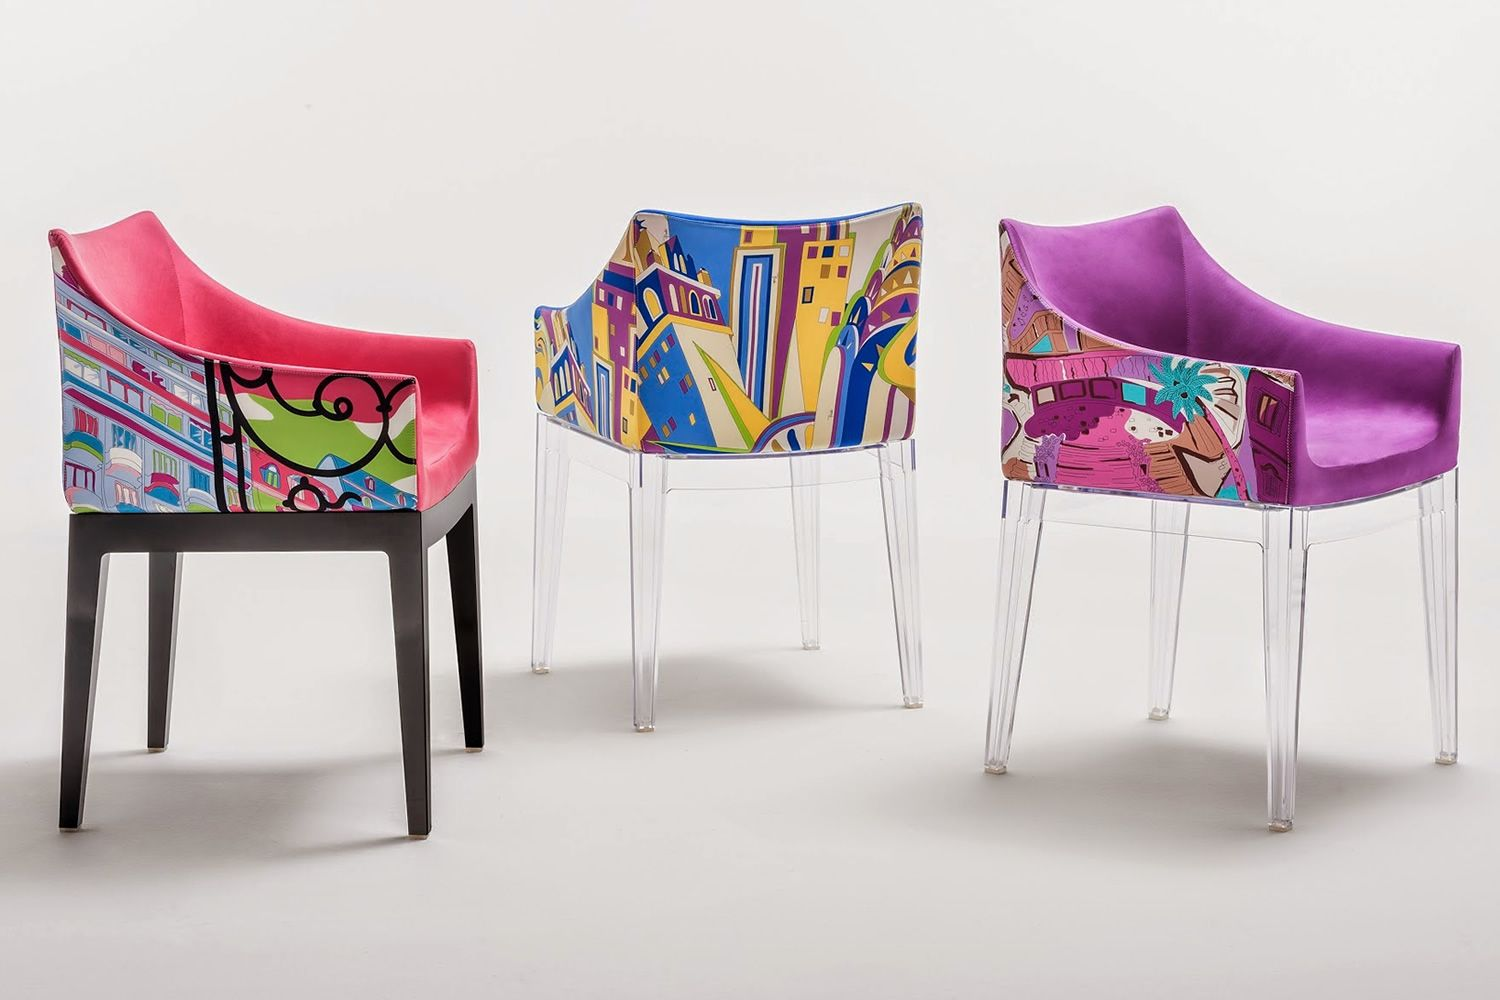 Madame pucci edition kartell design armchair world of emilio